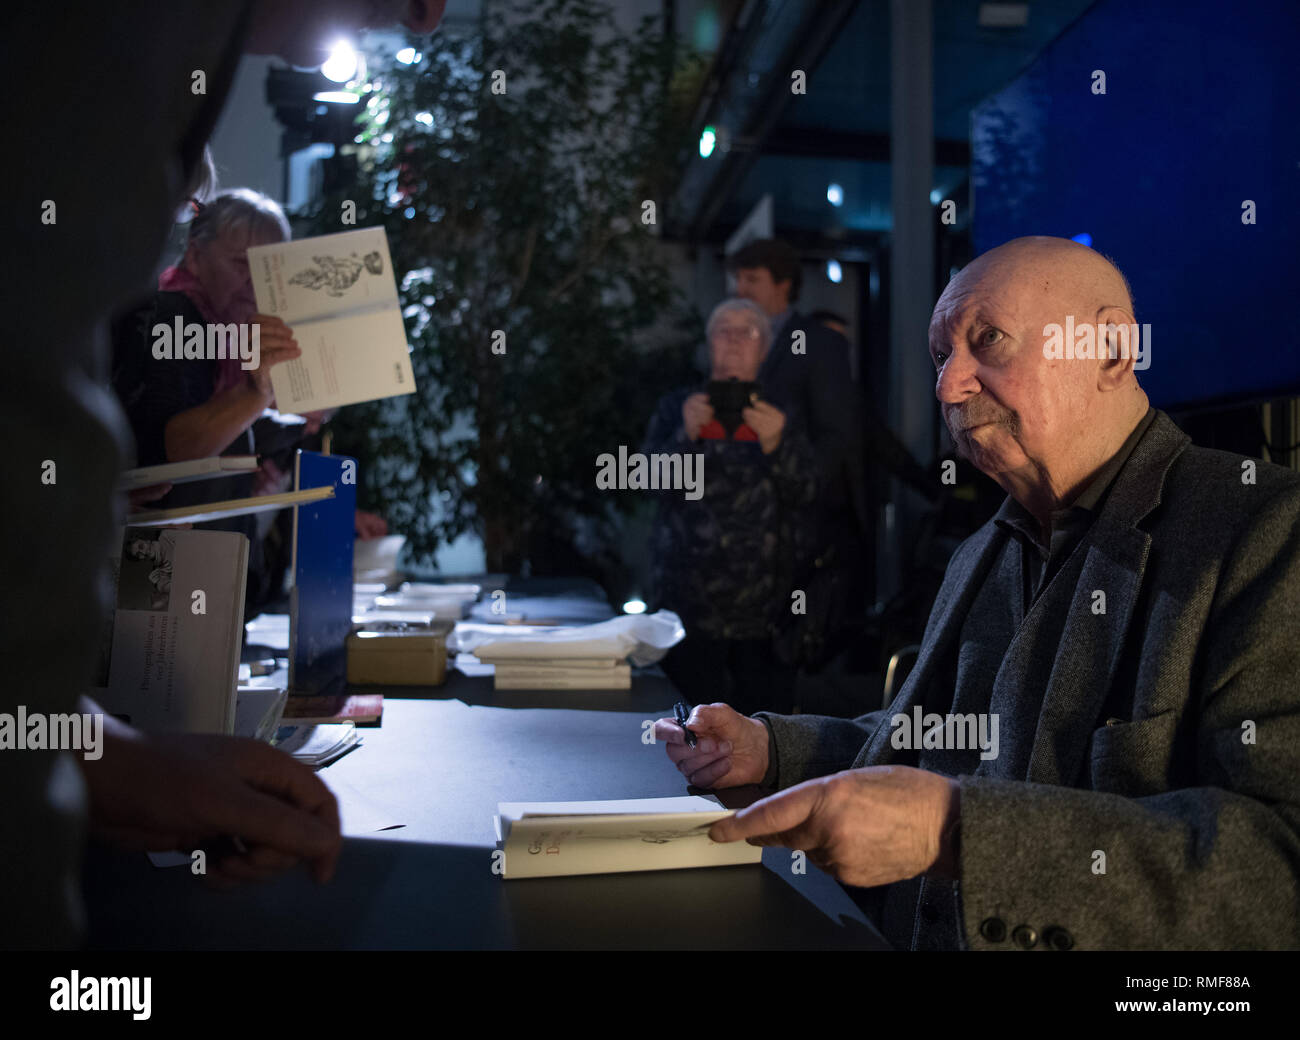 Berlin, Germany. 14th Feb, 2019. Writer Günter Kunert writes dedications in the state representation of Schleswig-Holstein after an interview about his book 'Die zweite Frau' (The Second Woman), which has now been published by Wallstein-Verlag. Kunert had written the novel almost 45 years ago, when he found the book unprintable in the GDR and had forgotten the manuscript in its hiding place. Credit: Soeren Stache/dpa/Alamy Live News - Stock Image